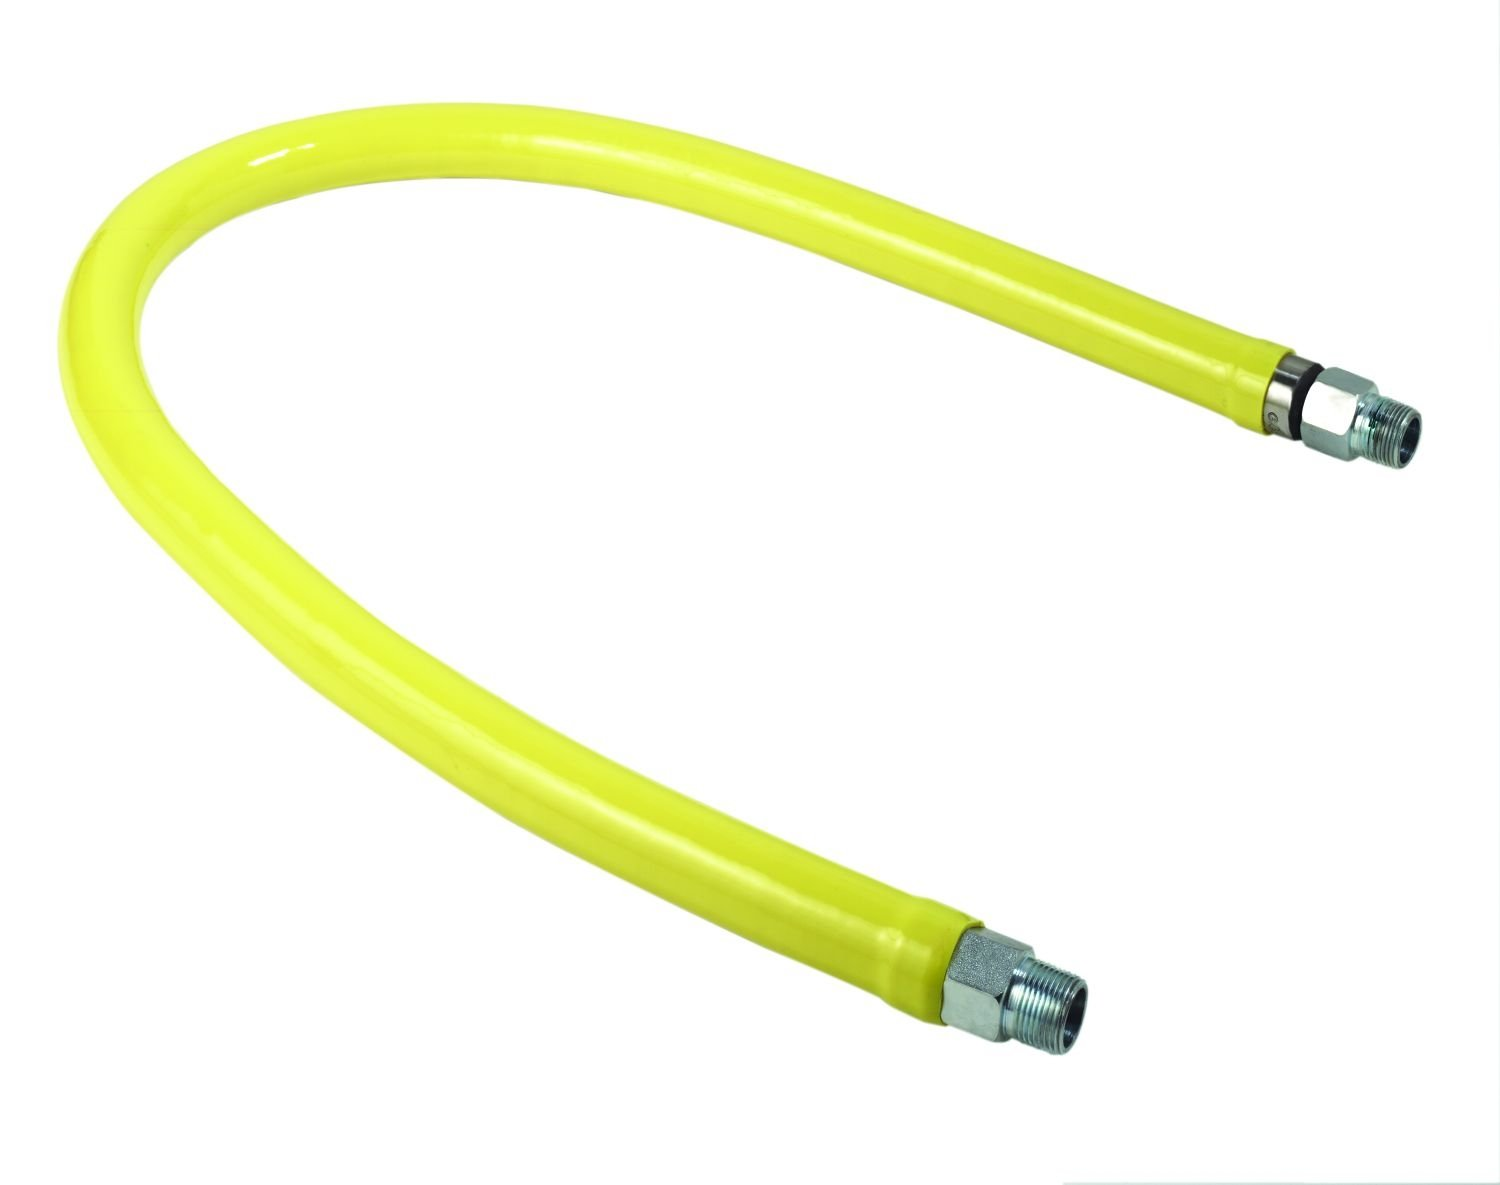 T/&S Brass HG-2E-72 Gas Hose with Free Spin Fittings 1-Inch Npt and 72-Inch Long